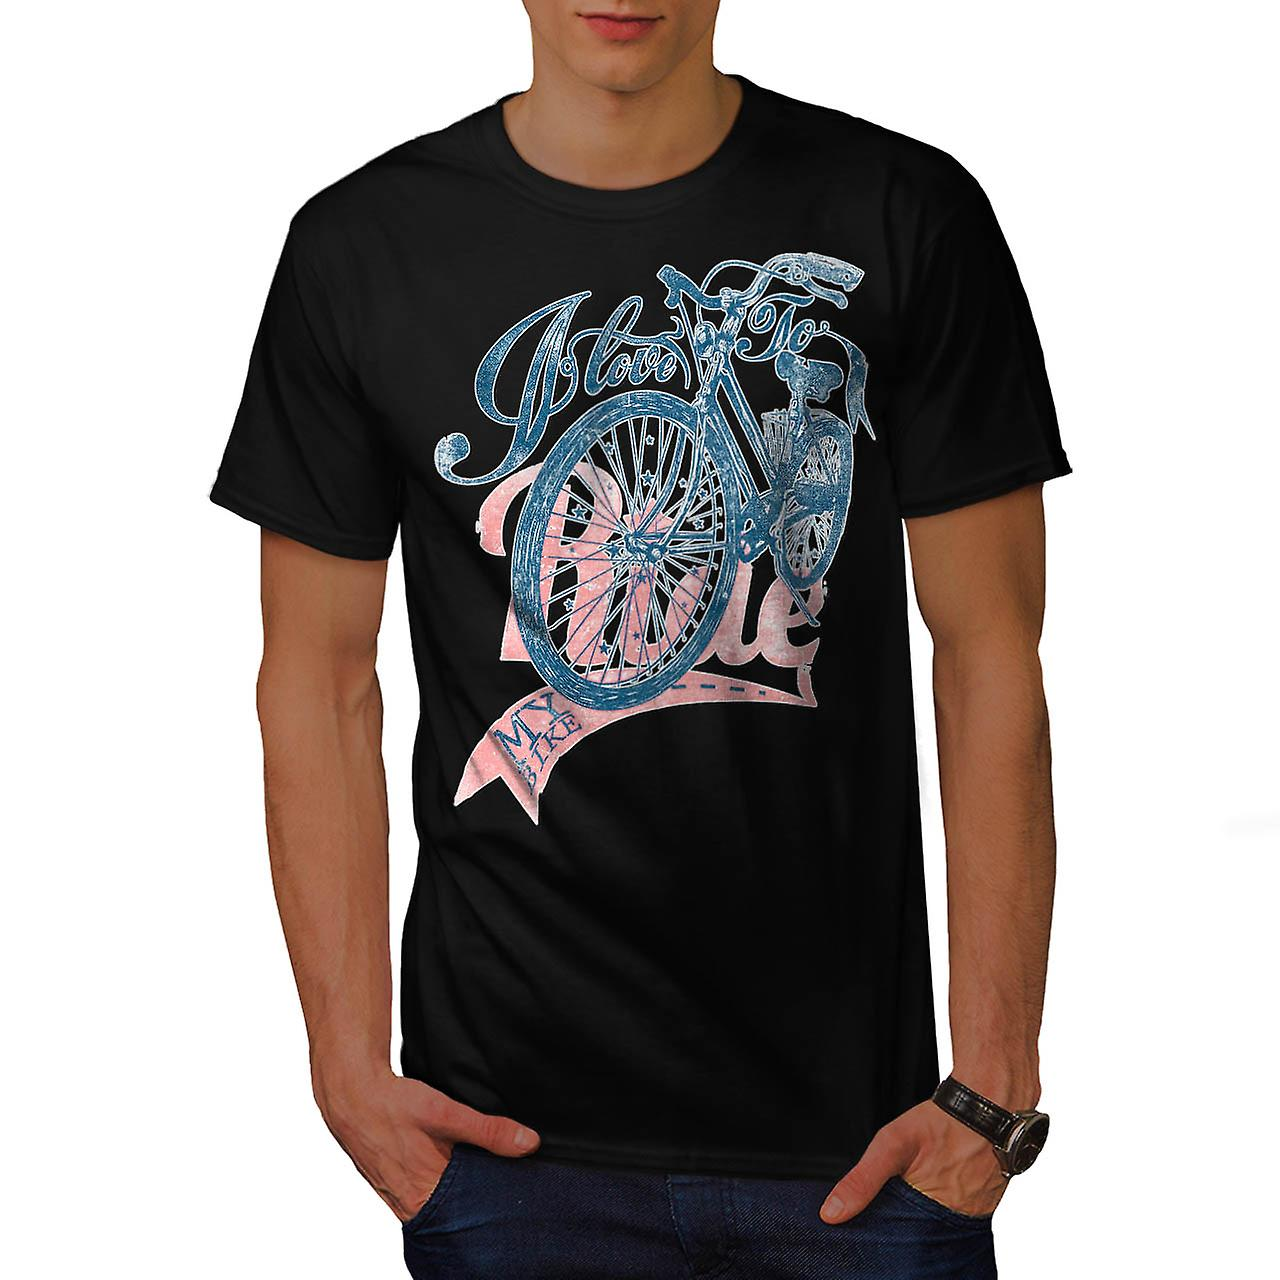 Love To Ride Cycling Bike Pedal Men Black T-shirt | Wellcoda